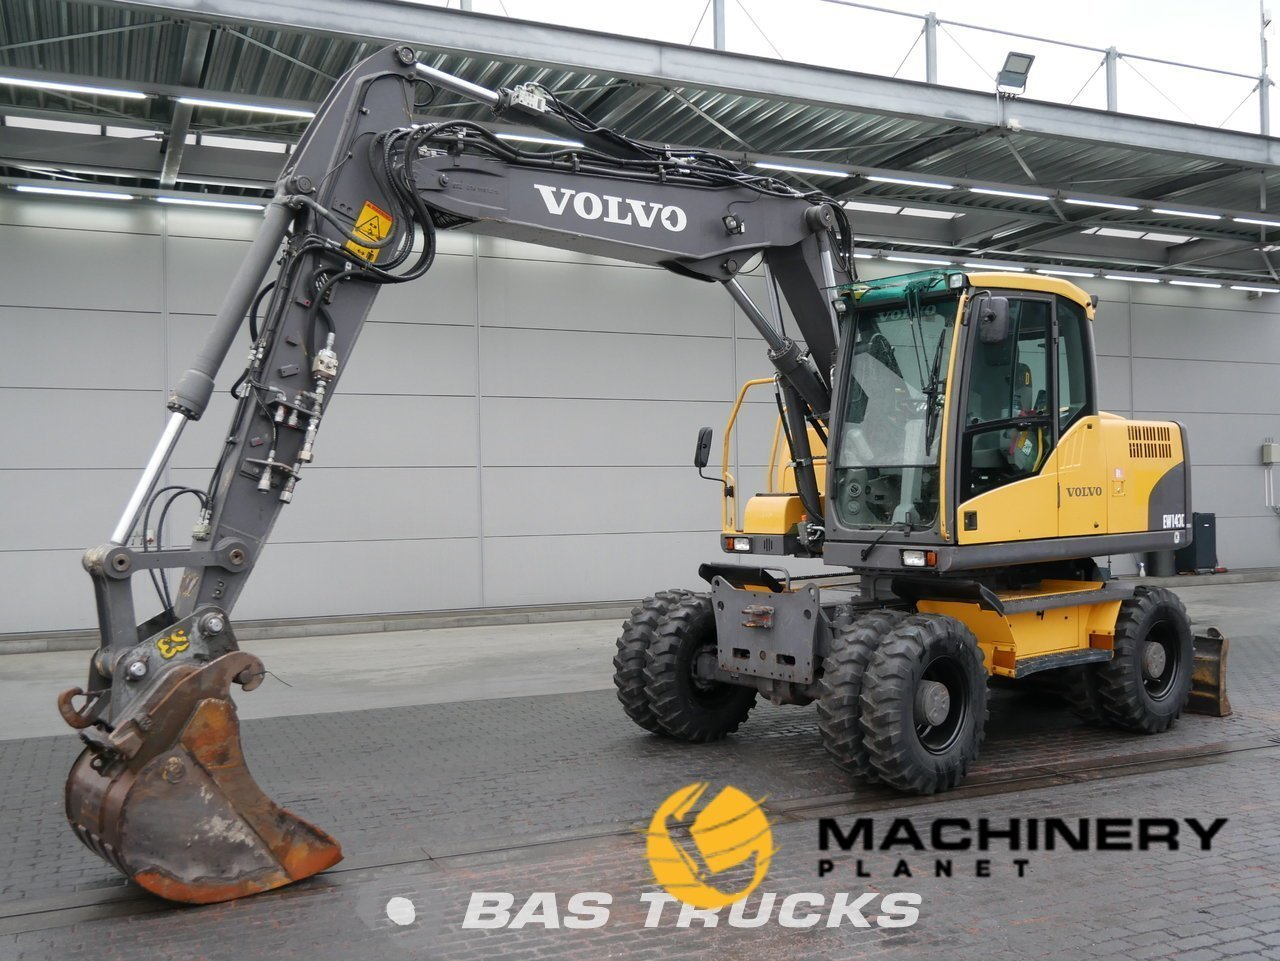 Used-Construction-equipment-Volvo-EW140C-4X4-2010_143069_1-1554124265388_5ca20de95ecb6-1.jpg